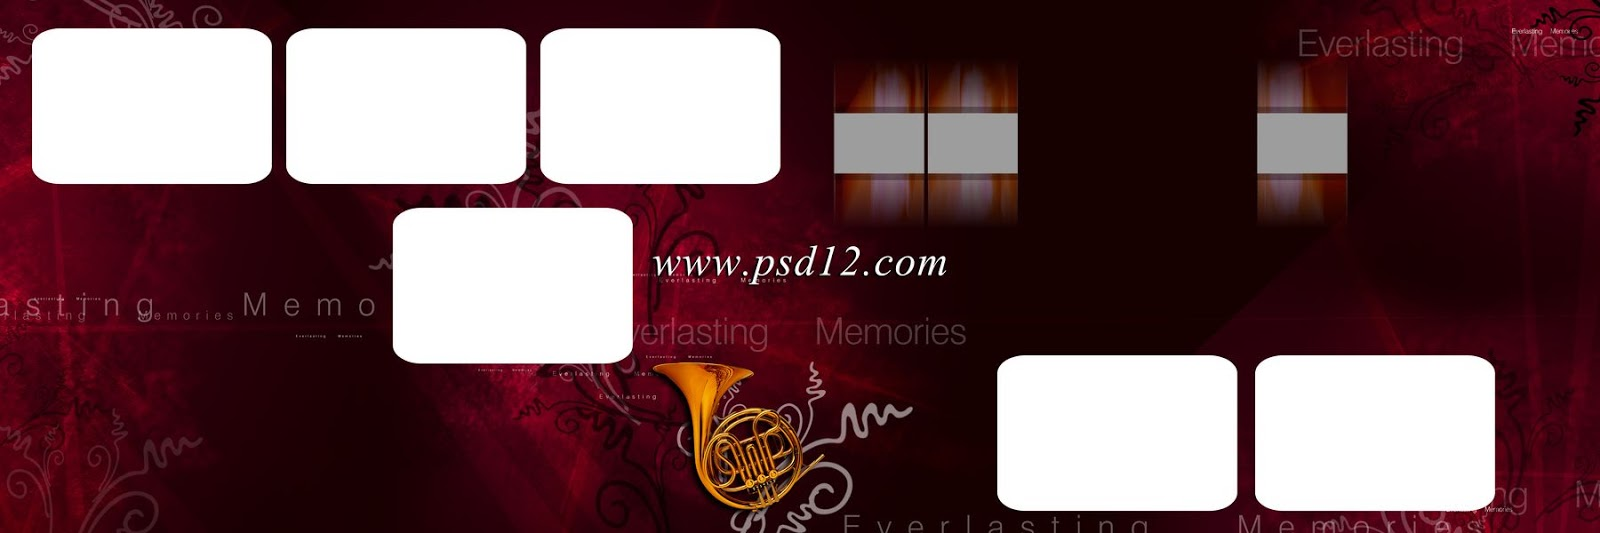 Indian Wedding Album Templates Free Download 12x36 Indian Wedding Album